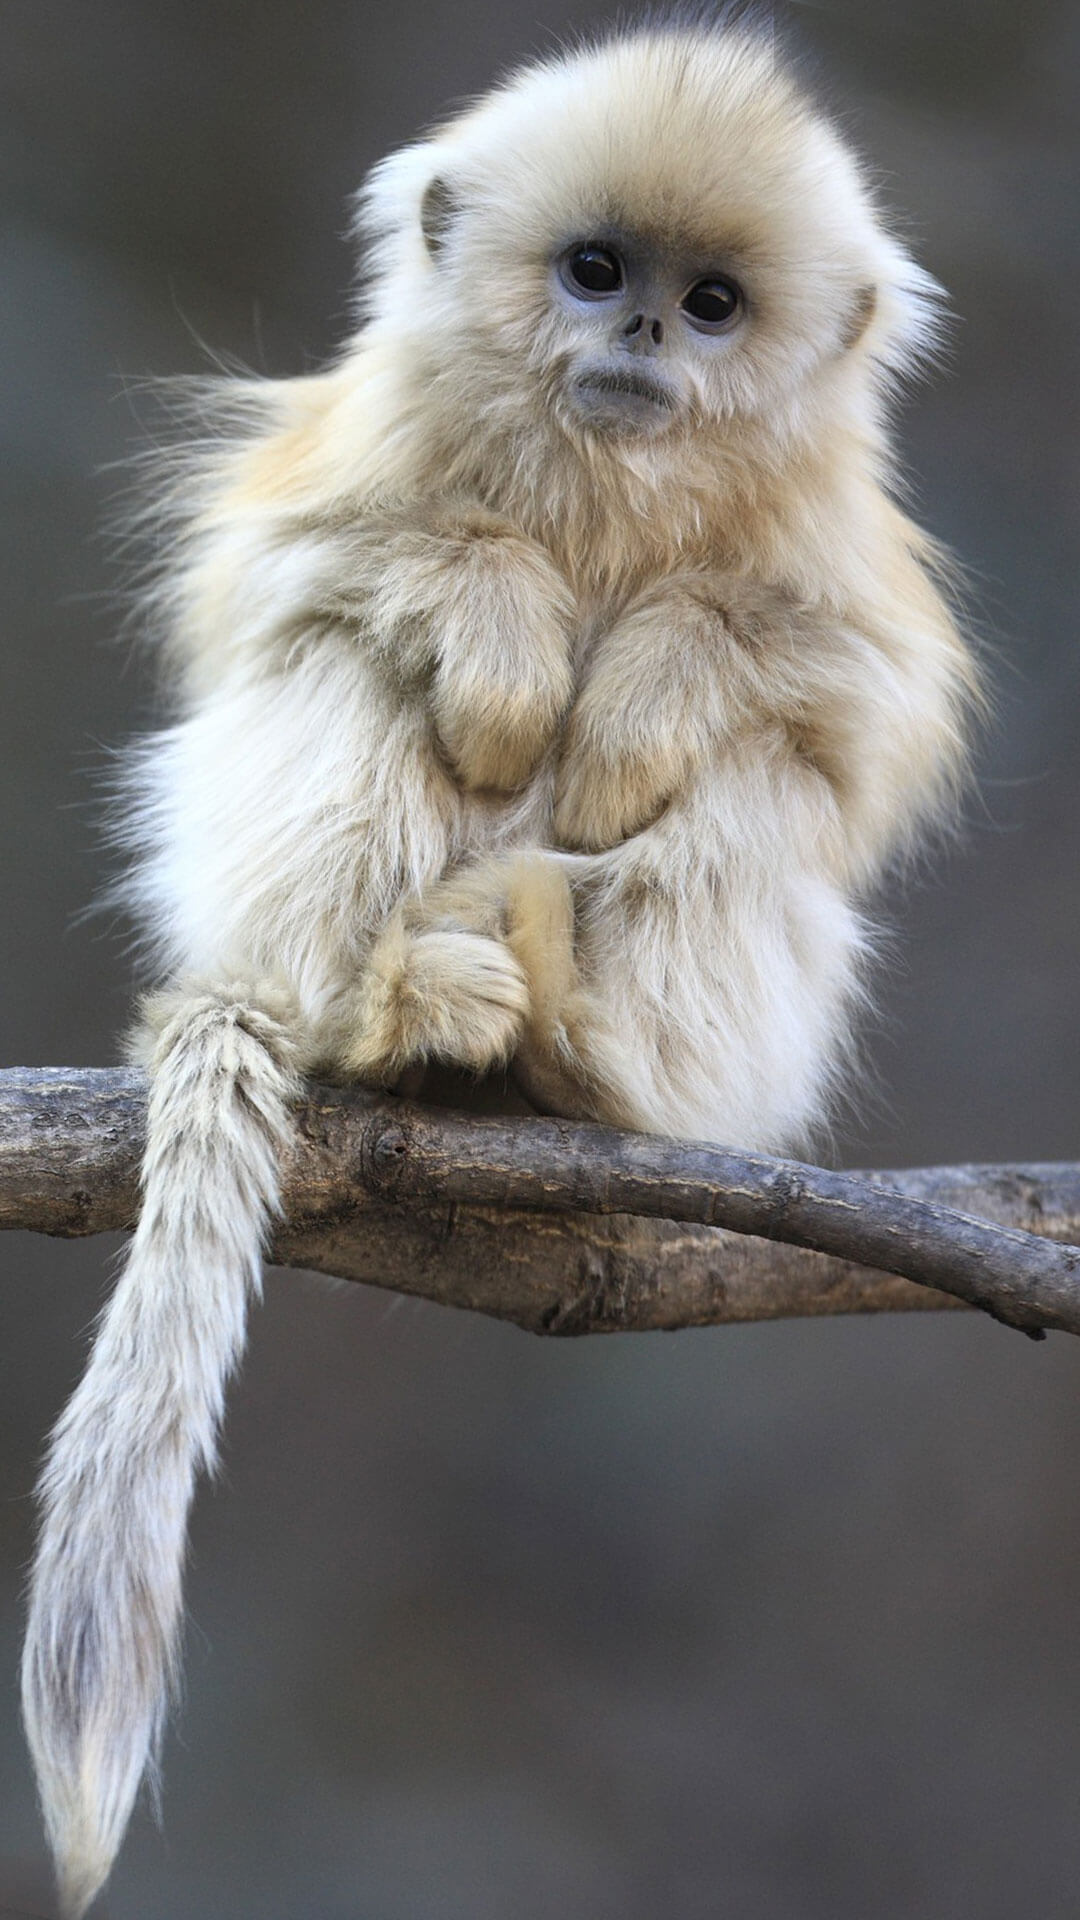 Cute Monkey Wallpaper For iPhone 6 HD | Animal Wallpaper for